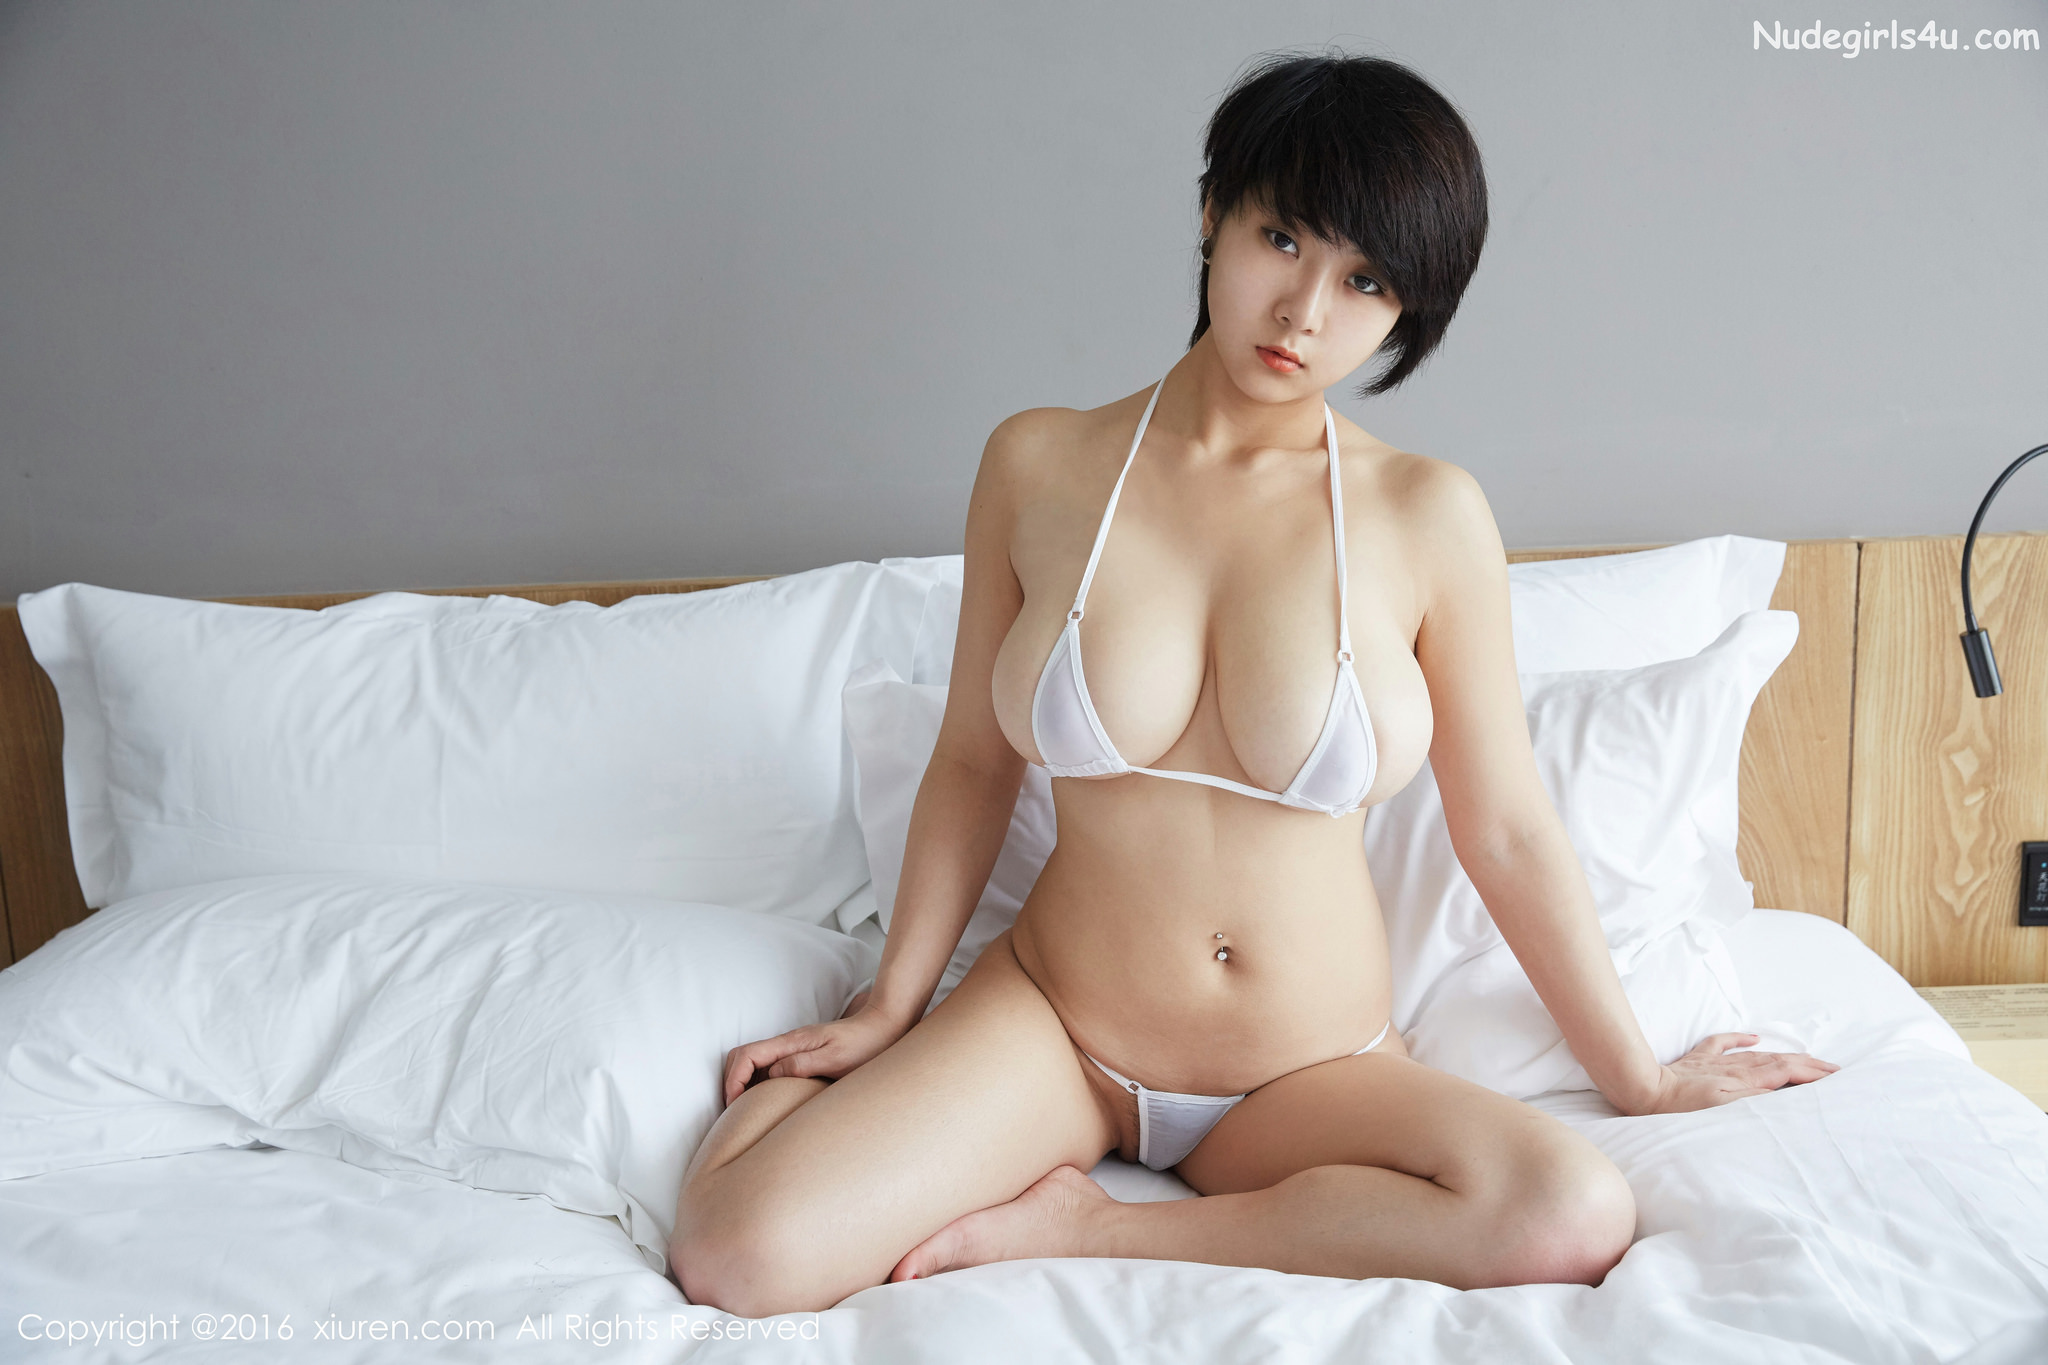 Girl nude xiuren cute